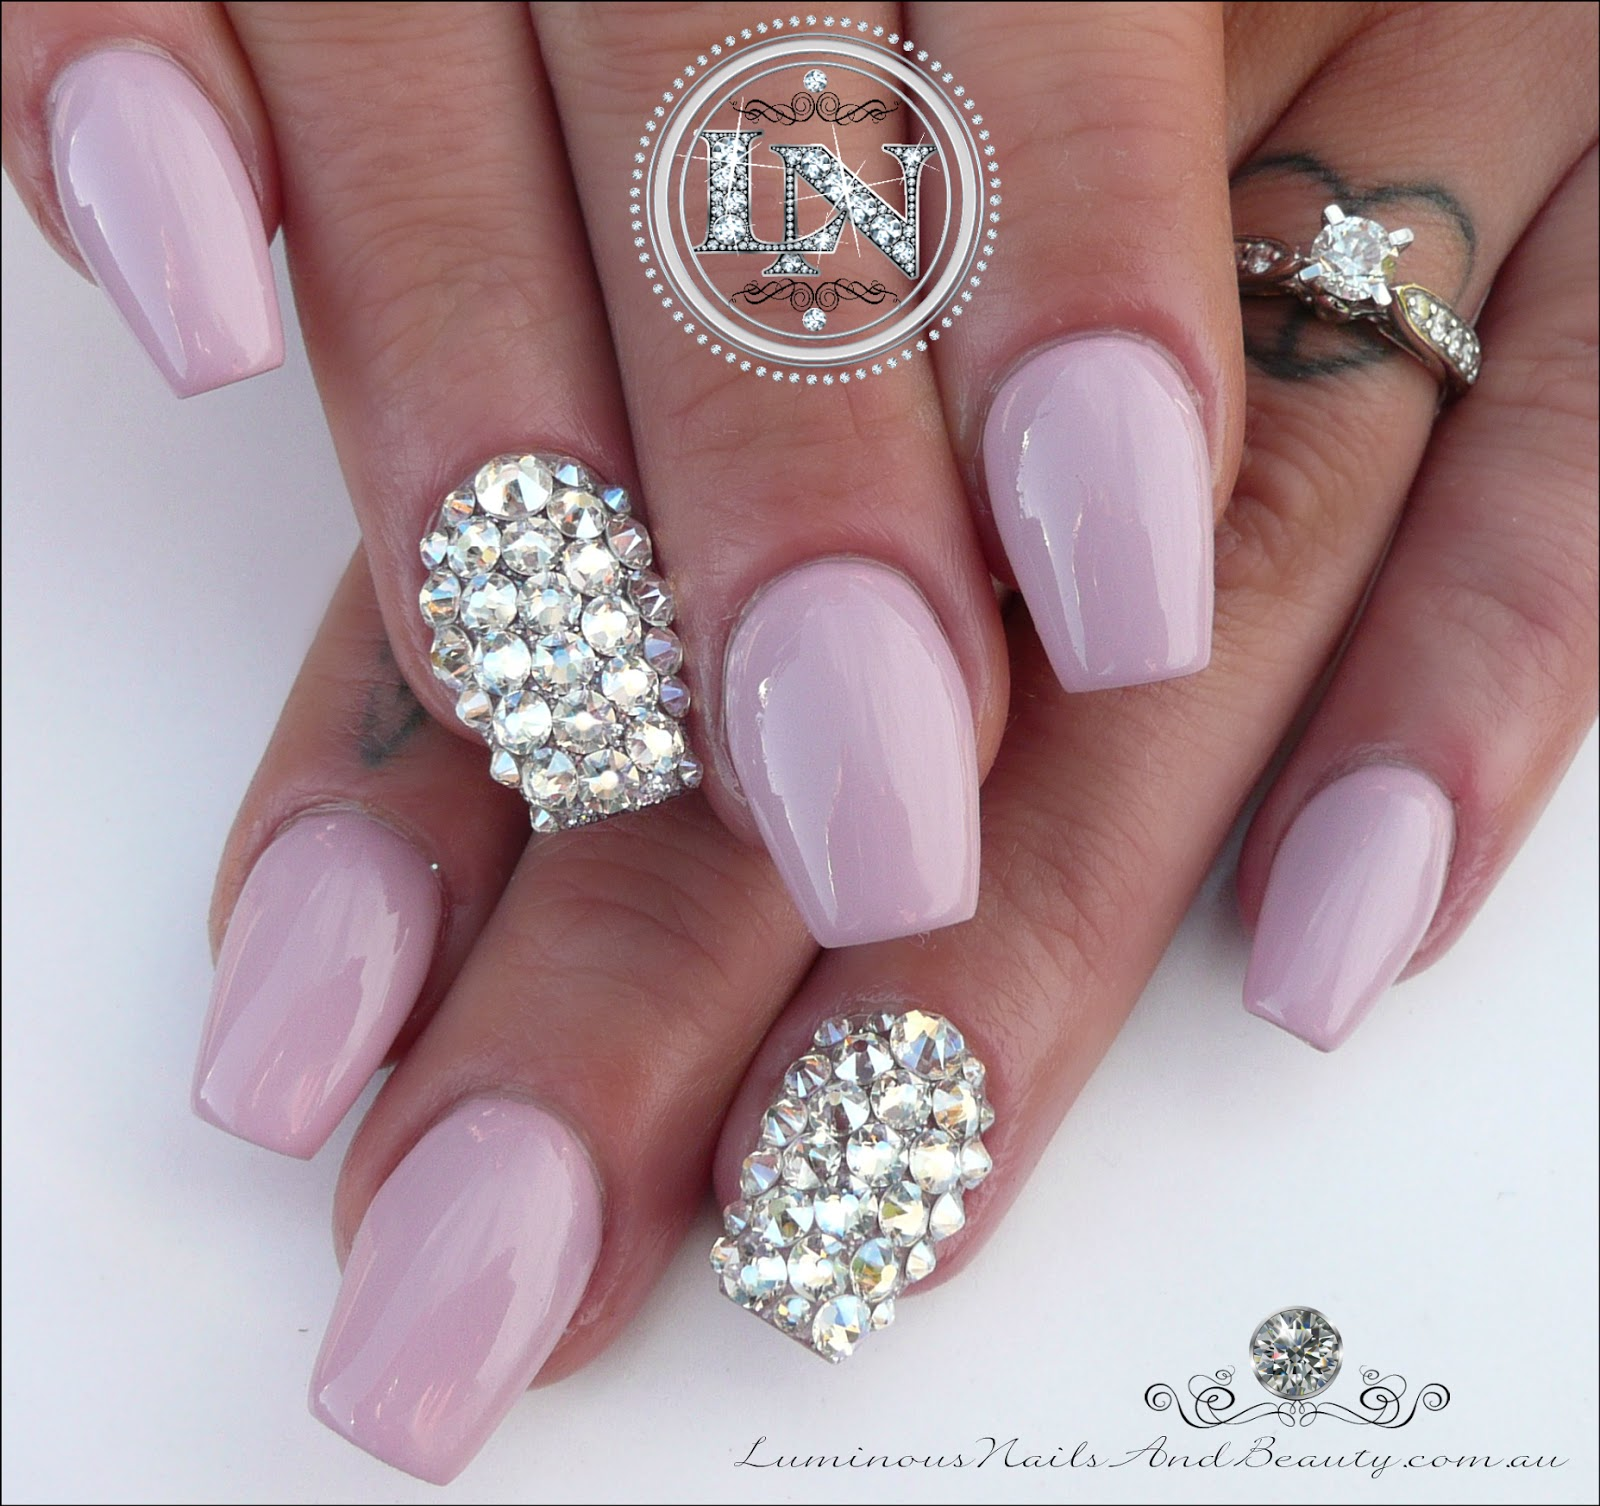 Pinky Mauve Bridal Wedding Nails Sculputred Acrylic With Lots Of Swarovski Bling